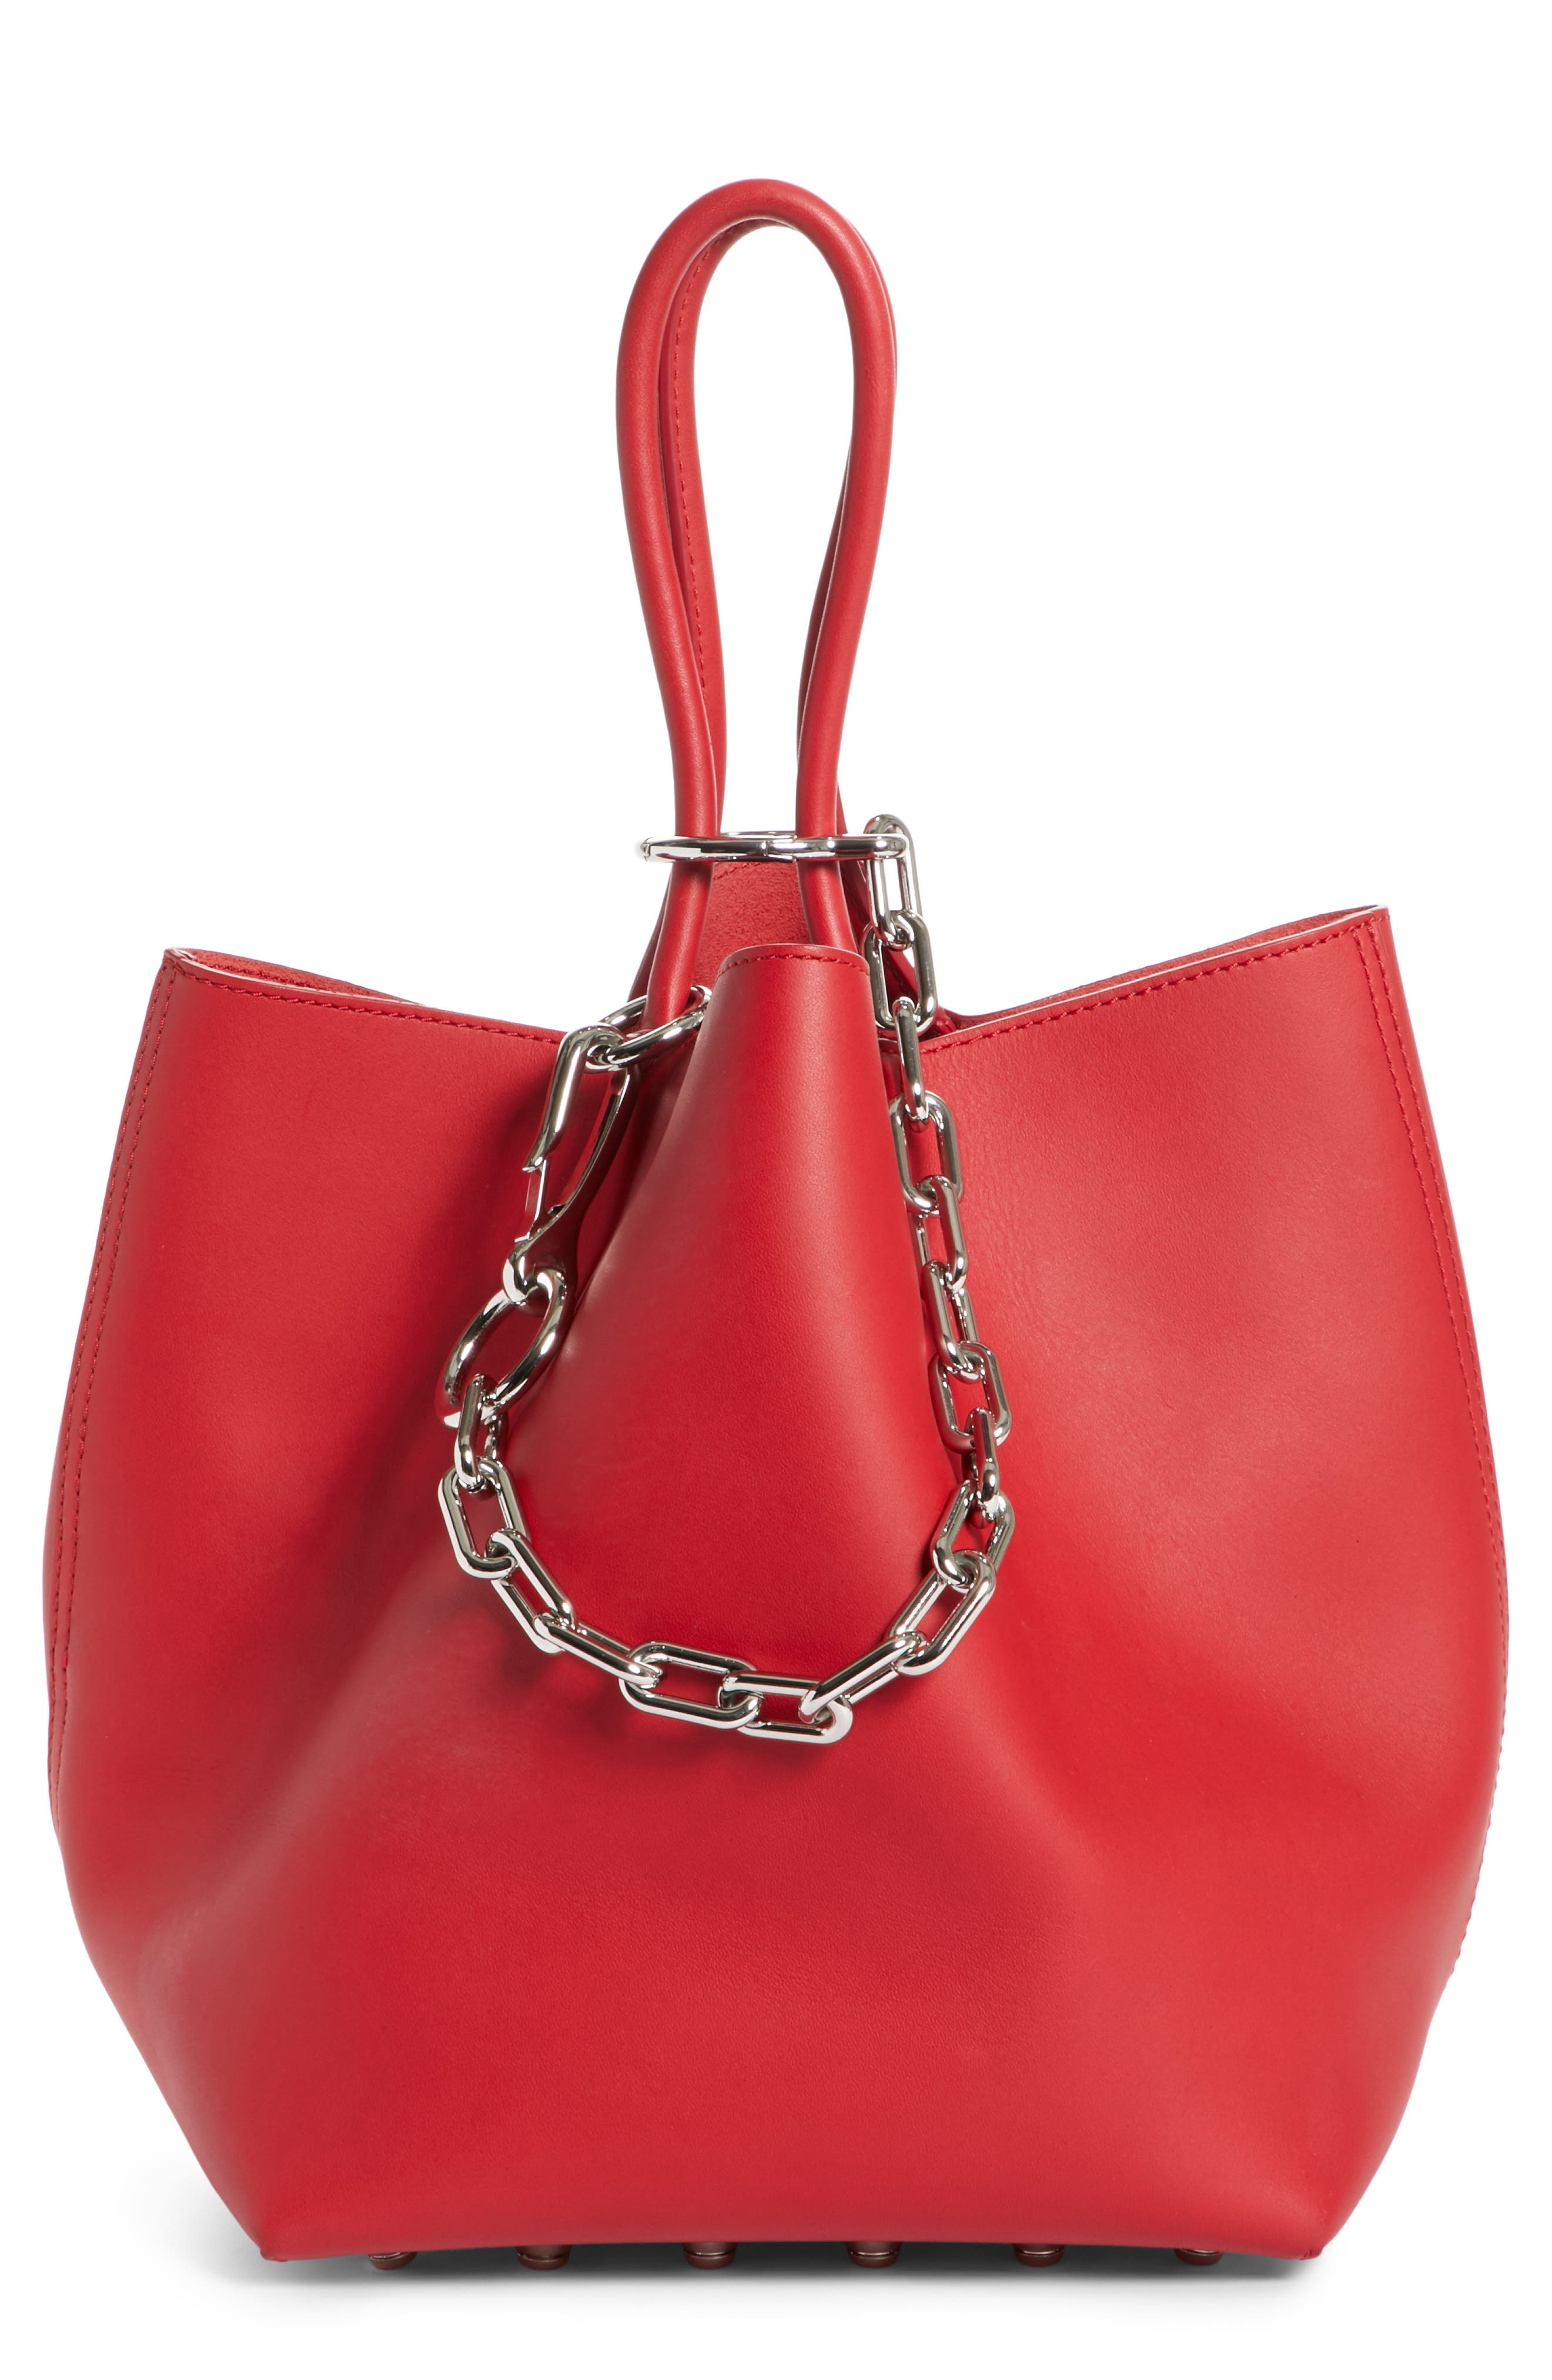 Small Roxy Leather Bucket Bag,                             Main thumbnail 1, color,                             Lipstick